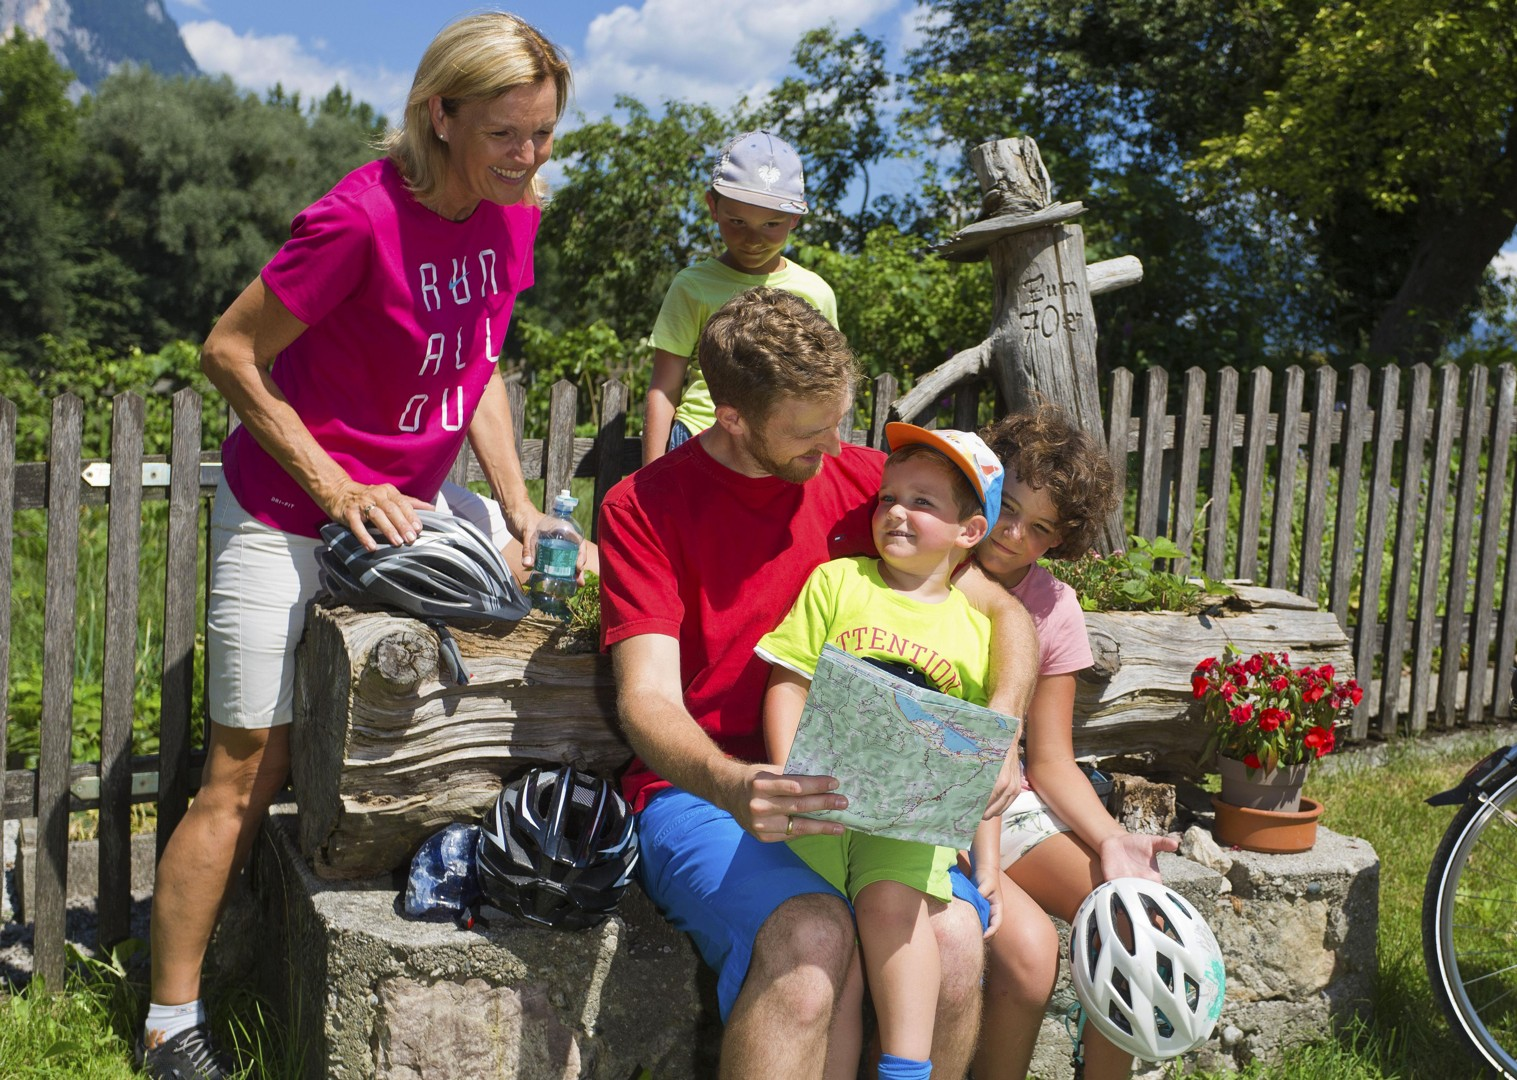 family-good-times-austria-holiday-cycling-skedaddle.jpg - Austria - Tauern Valleys - Self-Guided Family Cycling Holiday - Family Cycling